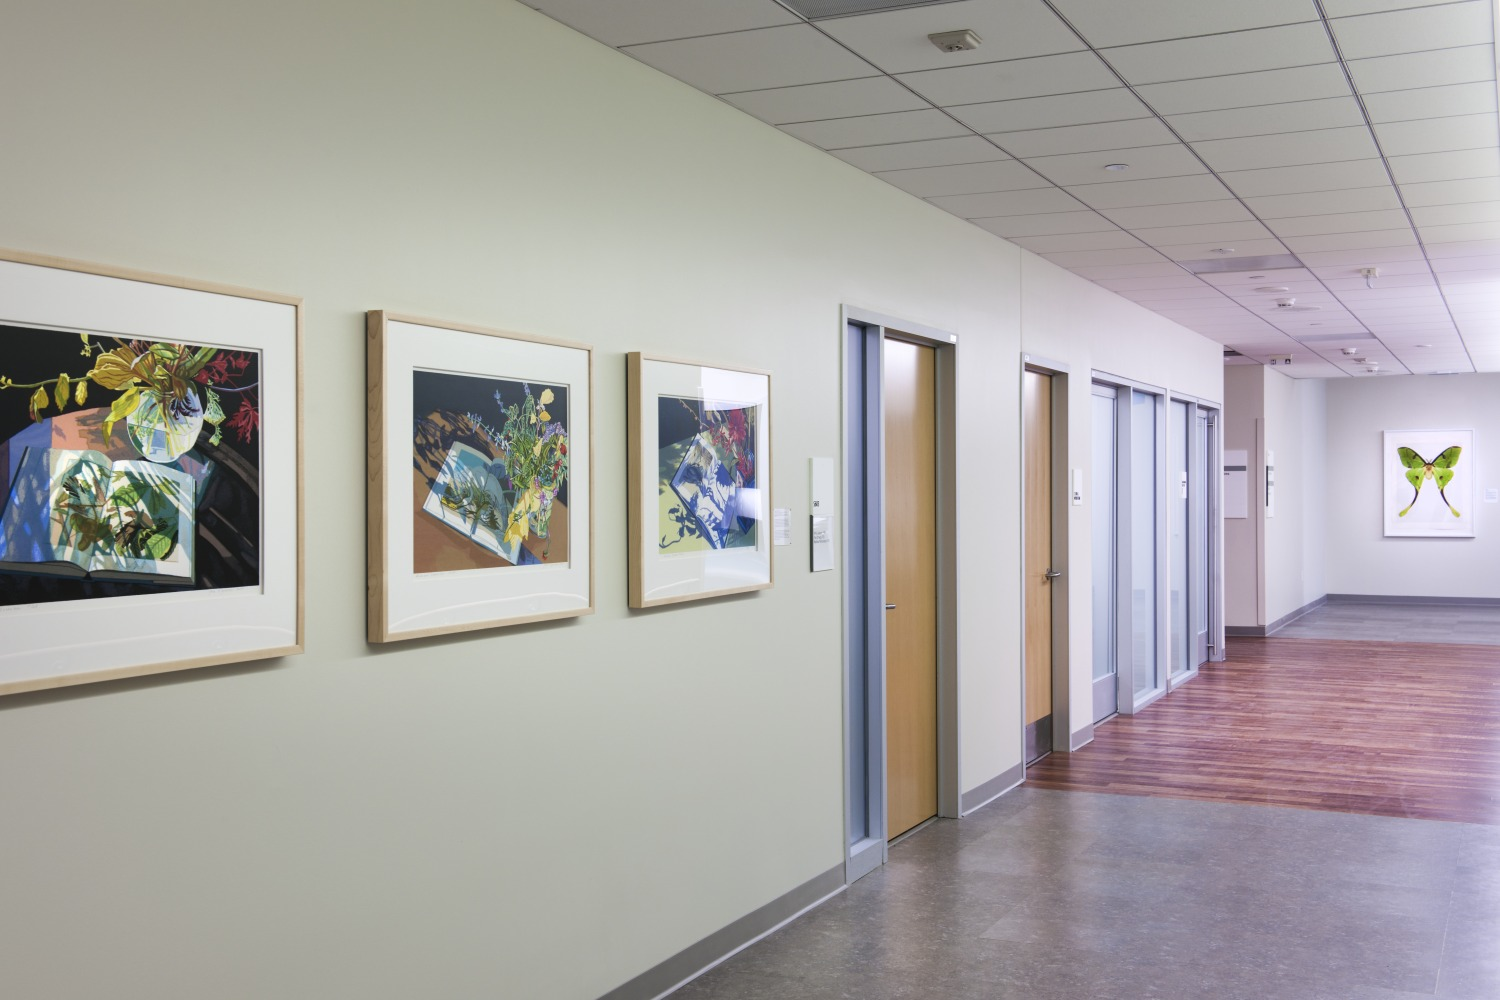 Hospital Featuring Nature Artwork